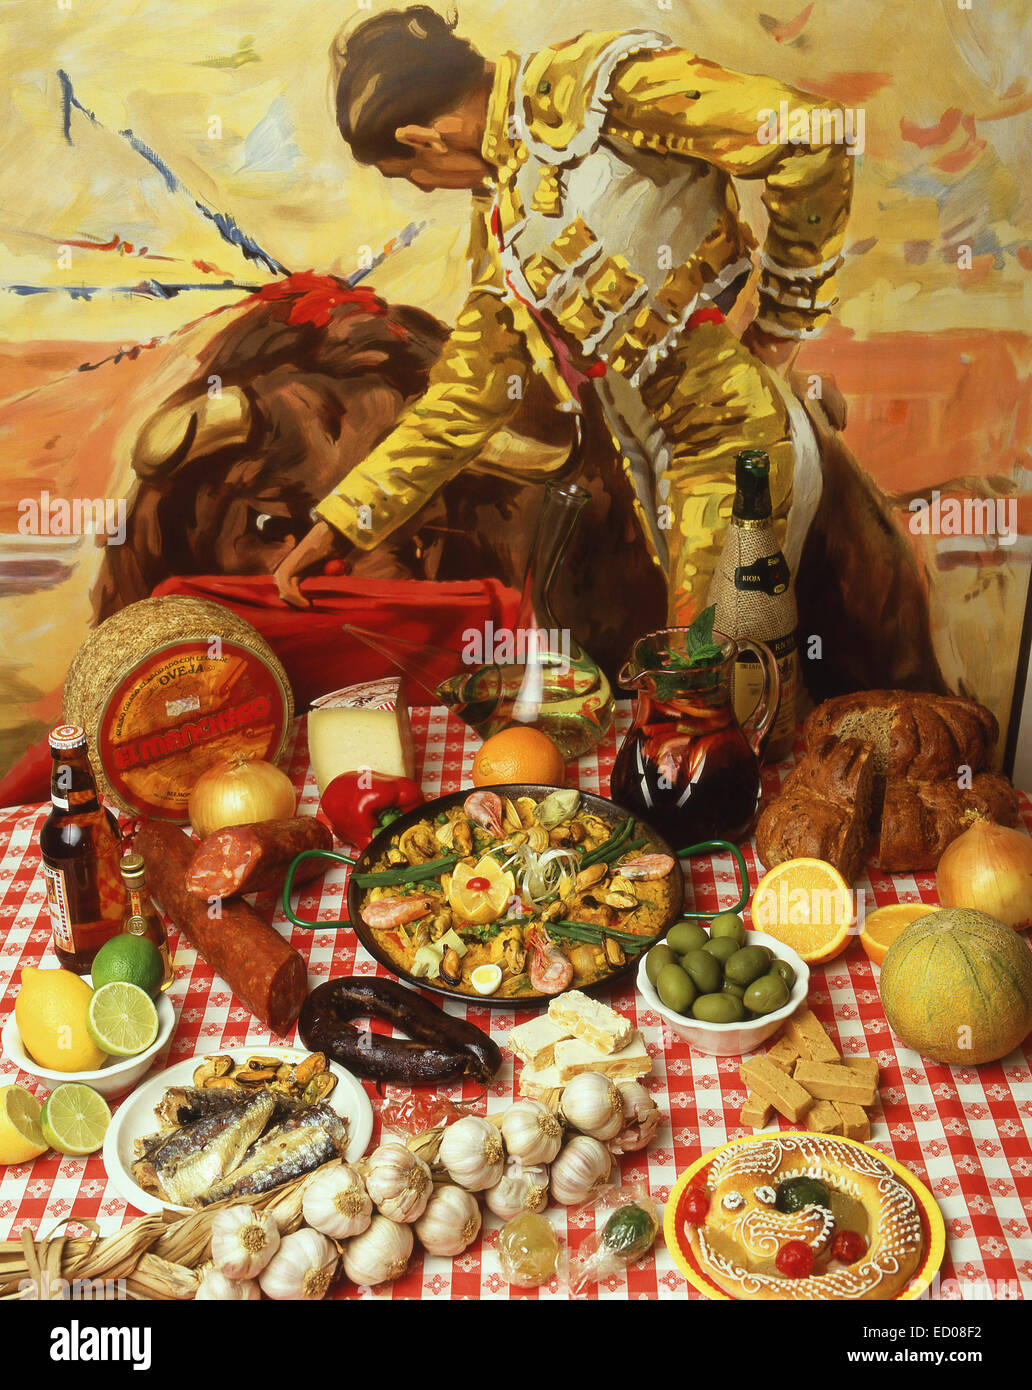 Selection of Spanish food on restaurant table, Alicante Province, Kingdom of Spain - Stock Image